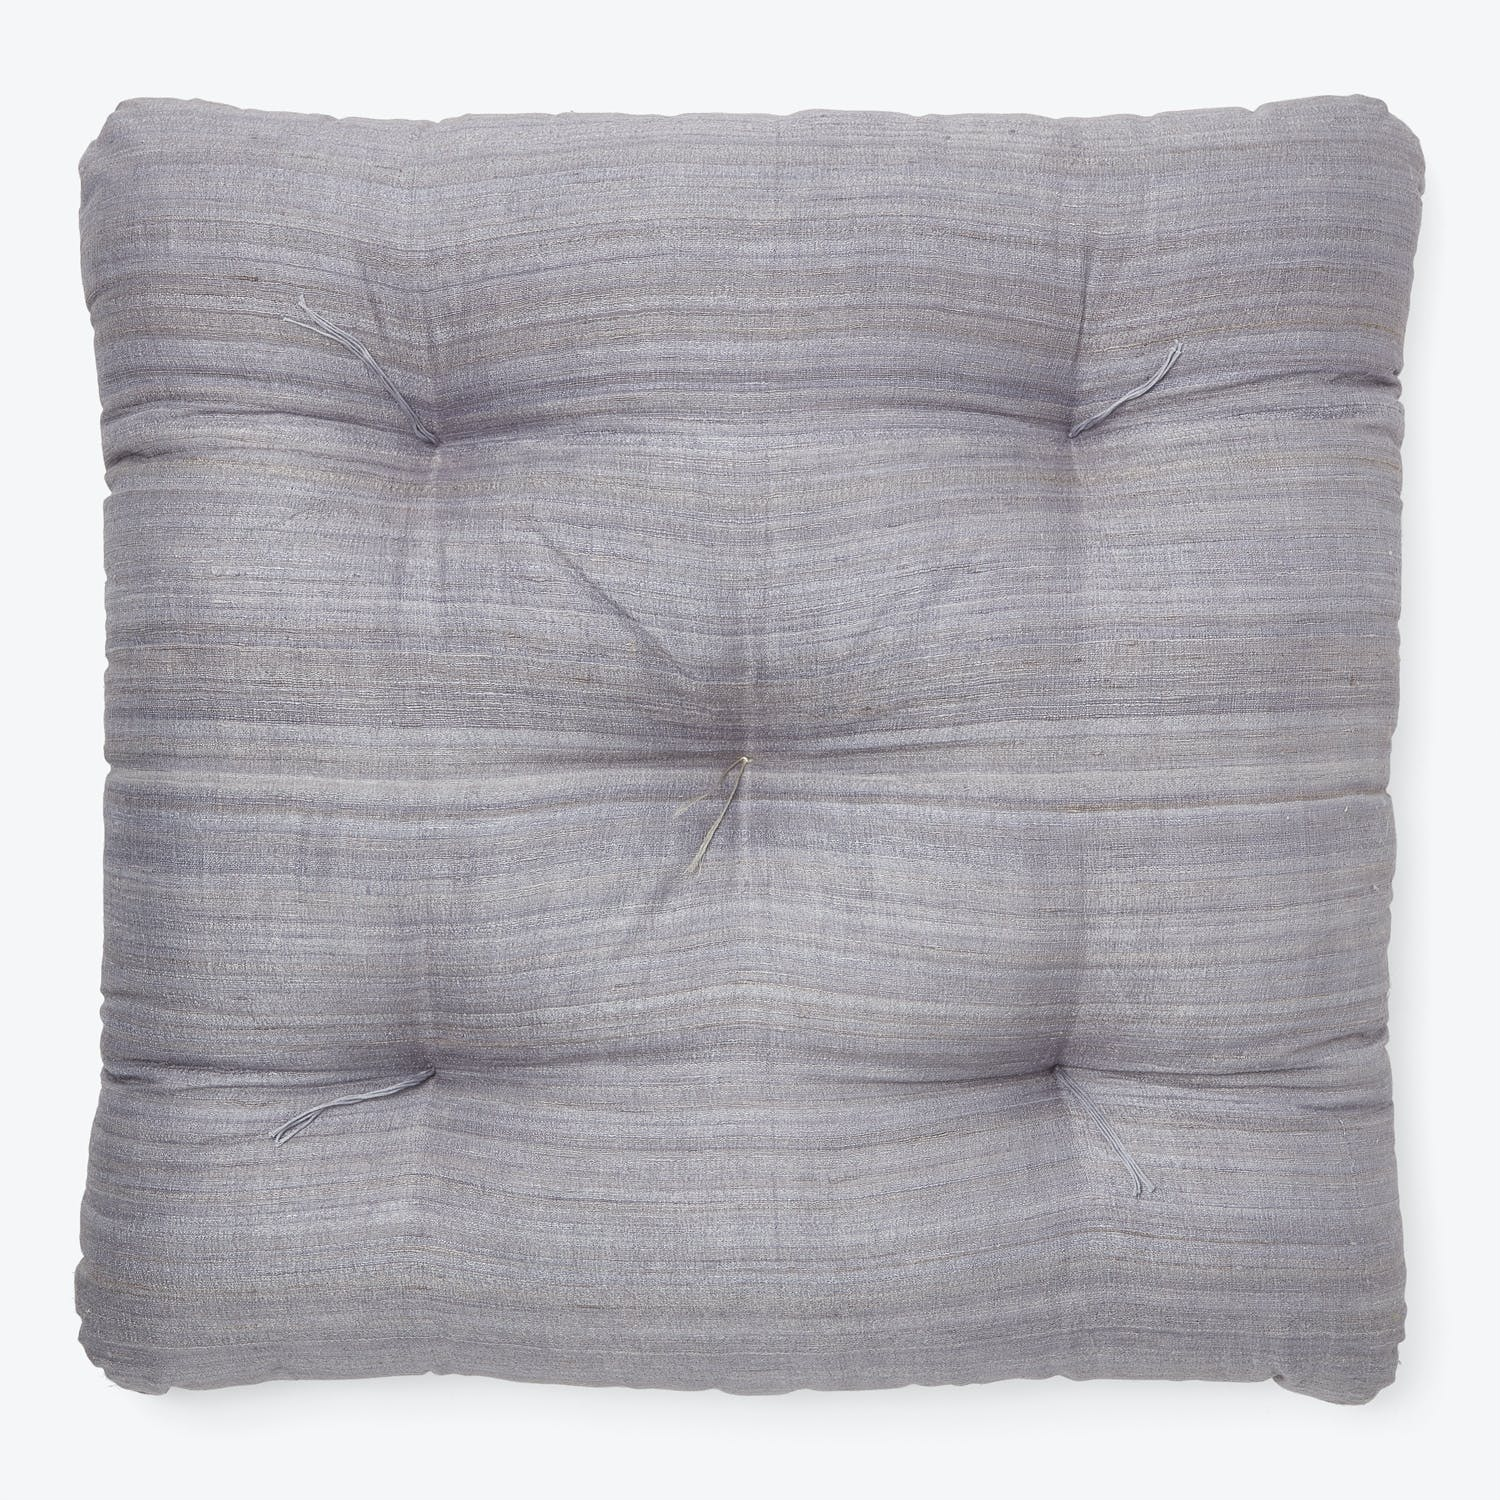 Product Image - abcDNA Lotus Large Meditation Cushion Moonstone